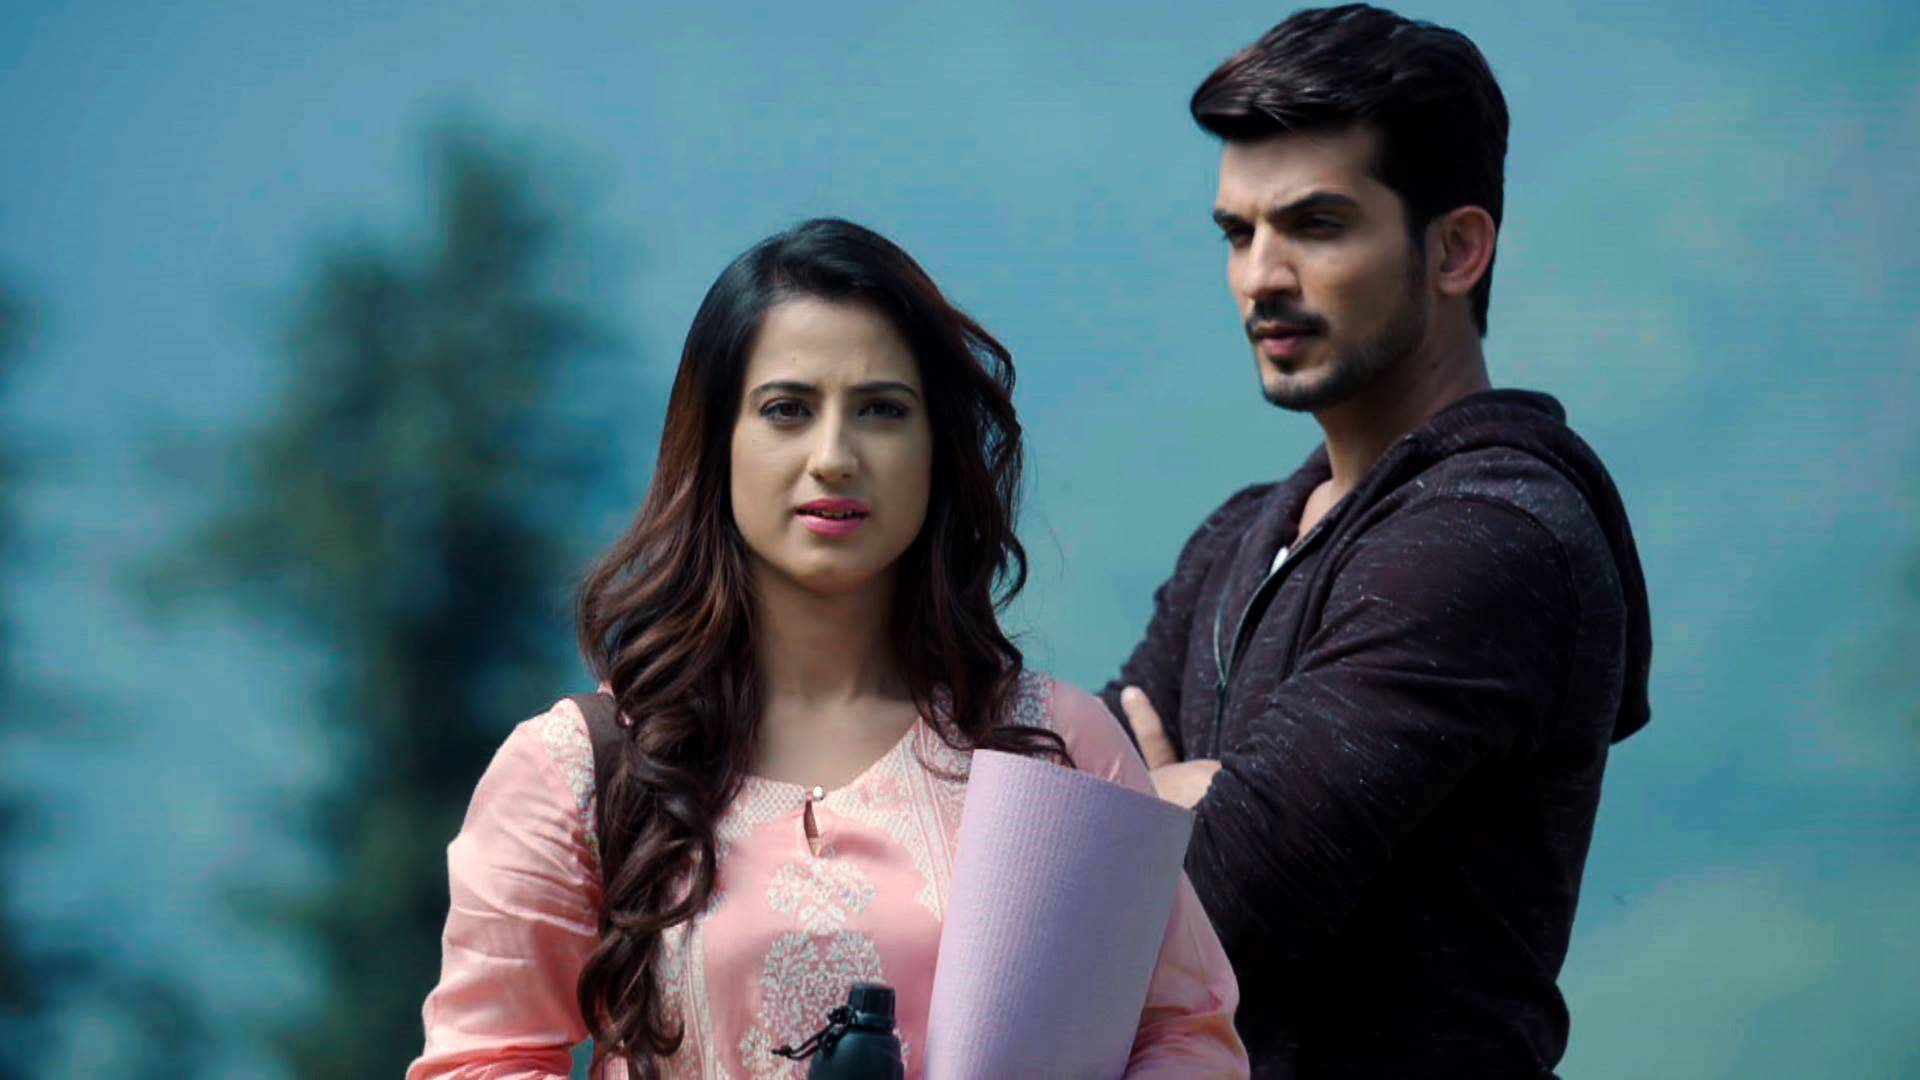 Ishq Mein Marjawan: Catch a glimpse of an upcoming magical love story that turns into a nightmare!